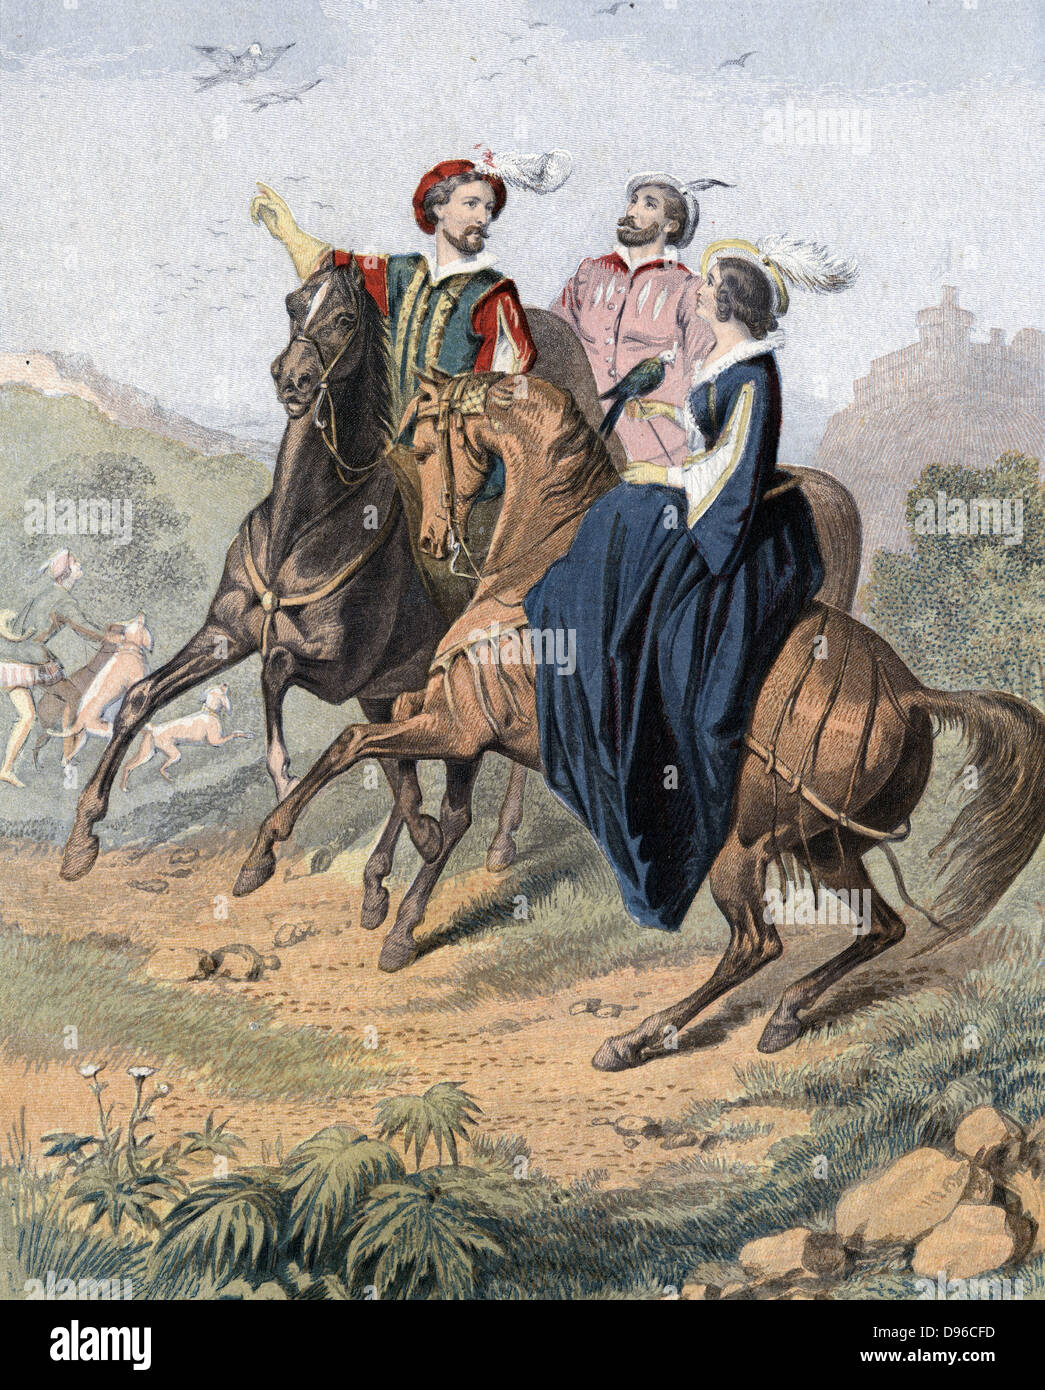 Falconry: artist's impression of late 16th century party out hawking. Woman, with falcon is riding side-saddle. - Stock Image